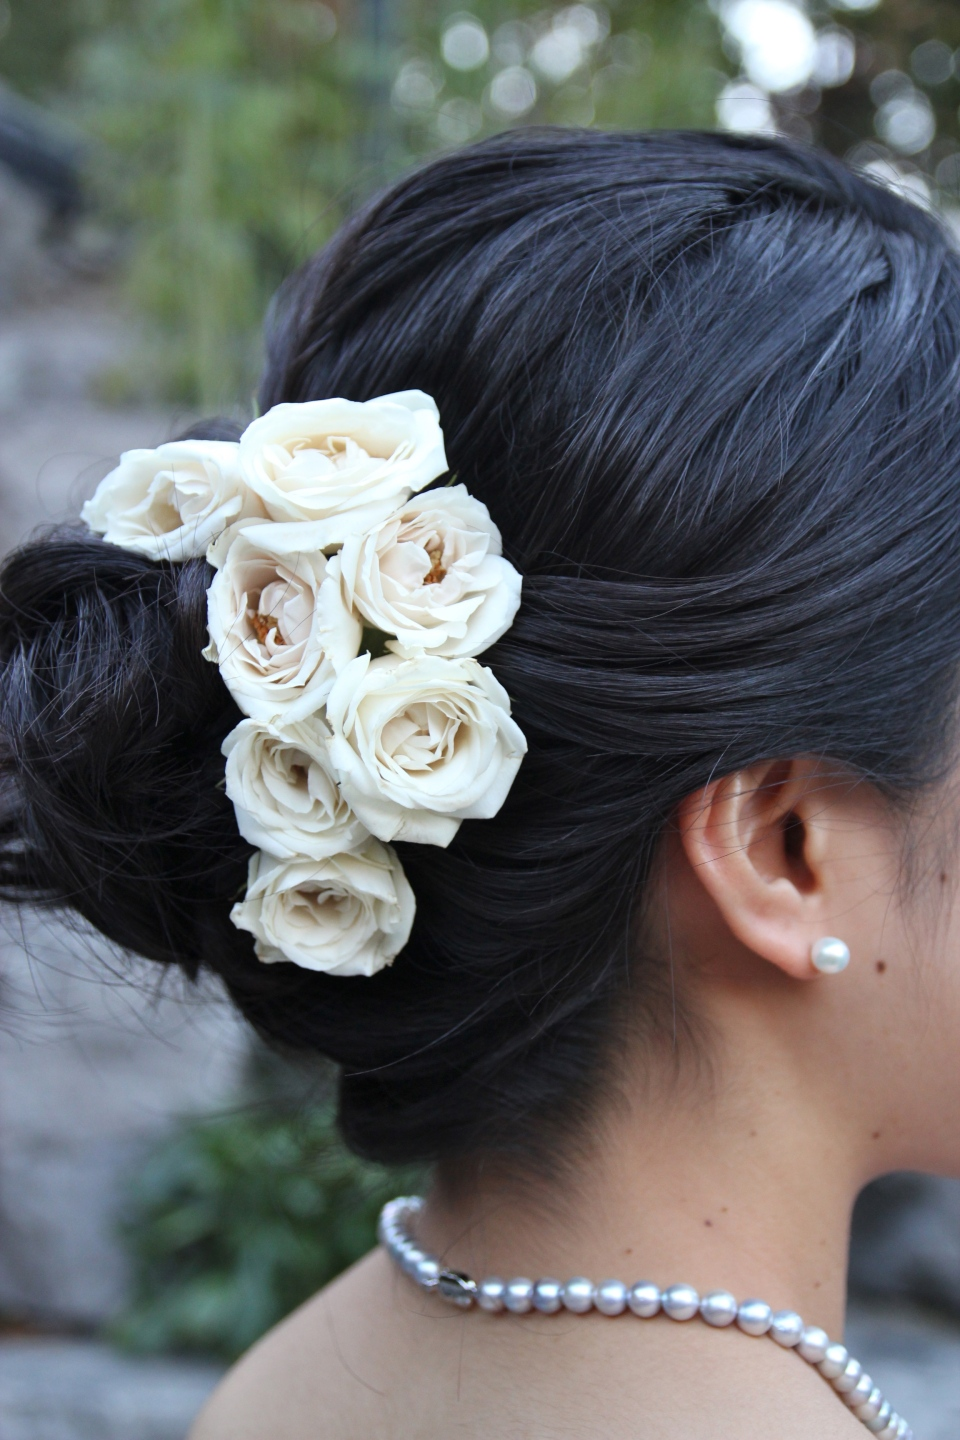 The bride's hairstyle with fresh ivory spray roses.